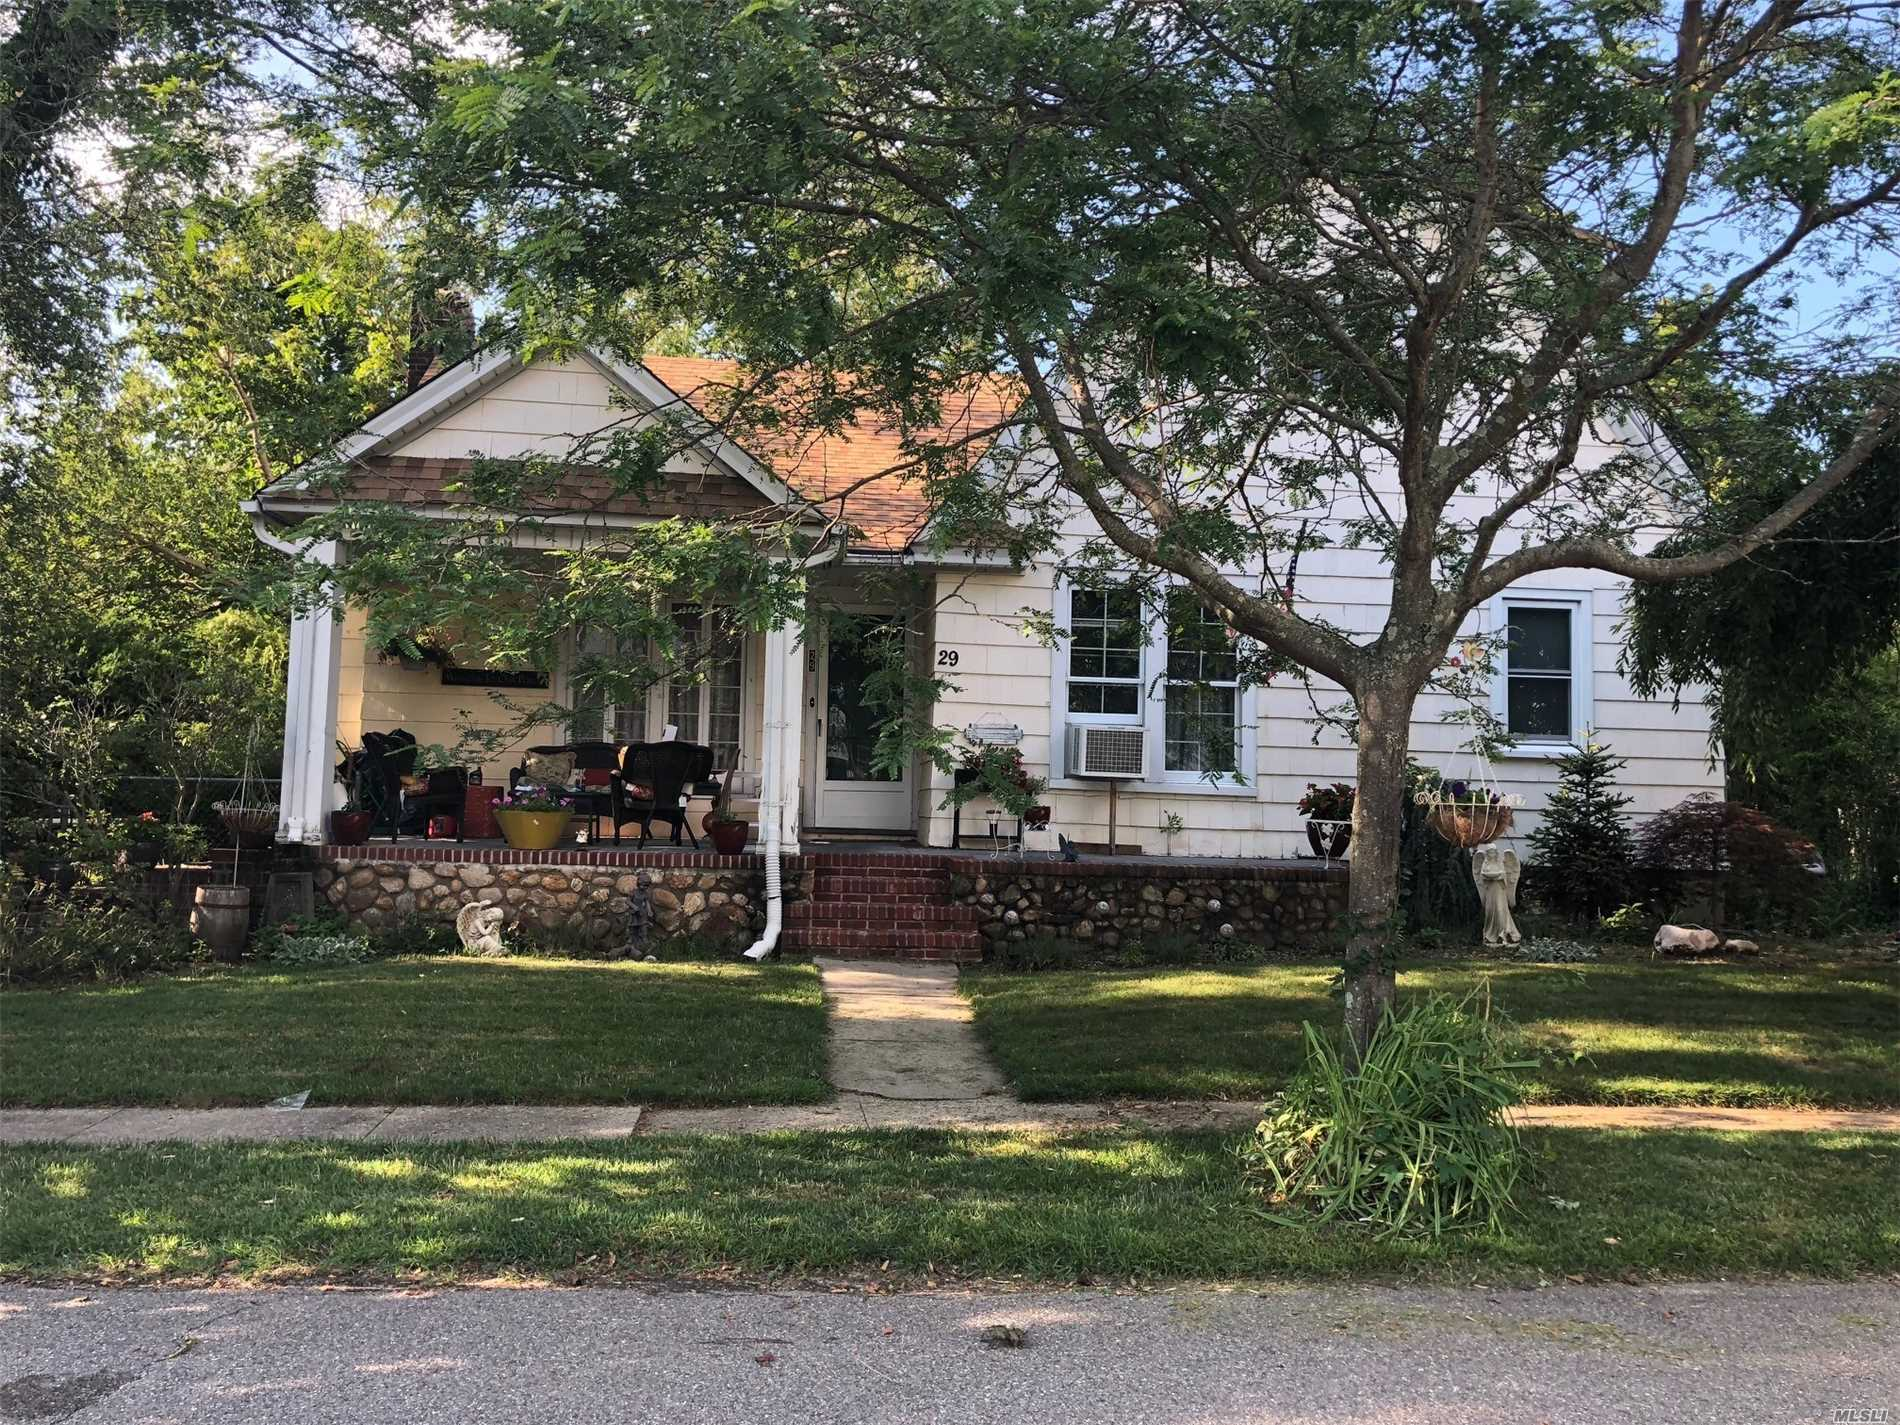 Tons Of Potential In This Cute Cape With Lots Of Classic Touches! 4 Bedrooms, 2 Full Bathrooms, Eat In Kitchen, Formal Dining Room, Living Room With High Ceilings, And Full Basement. With Some Tlc This House Will Make A Beautiful Home.